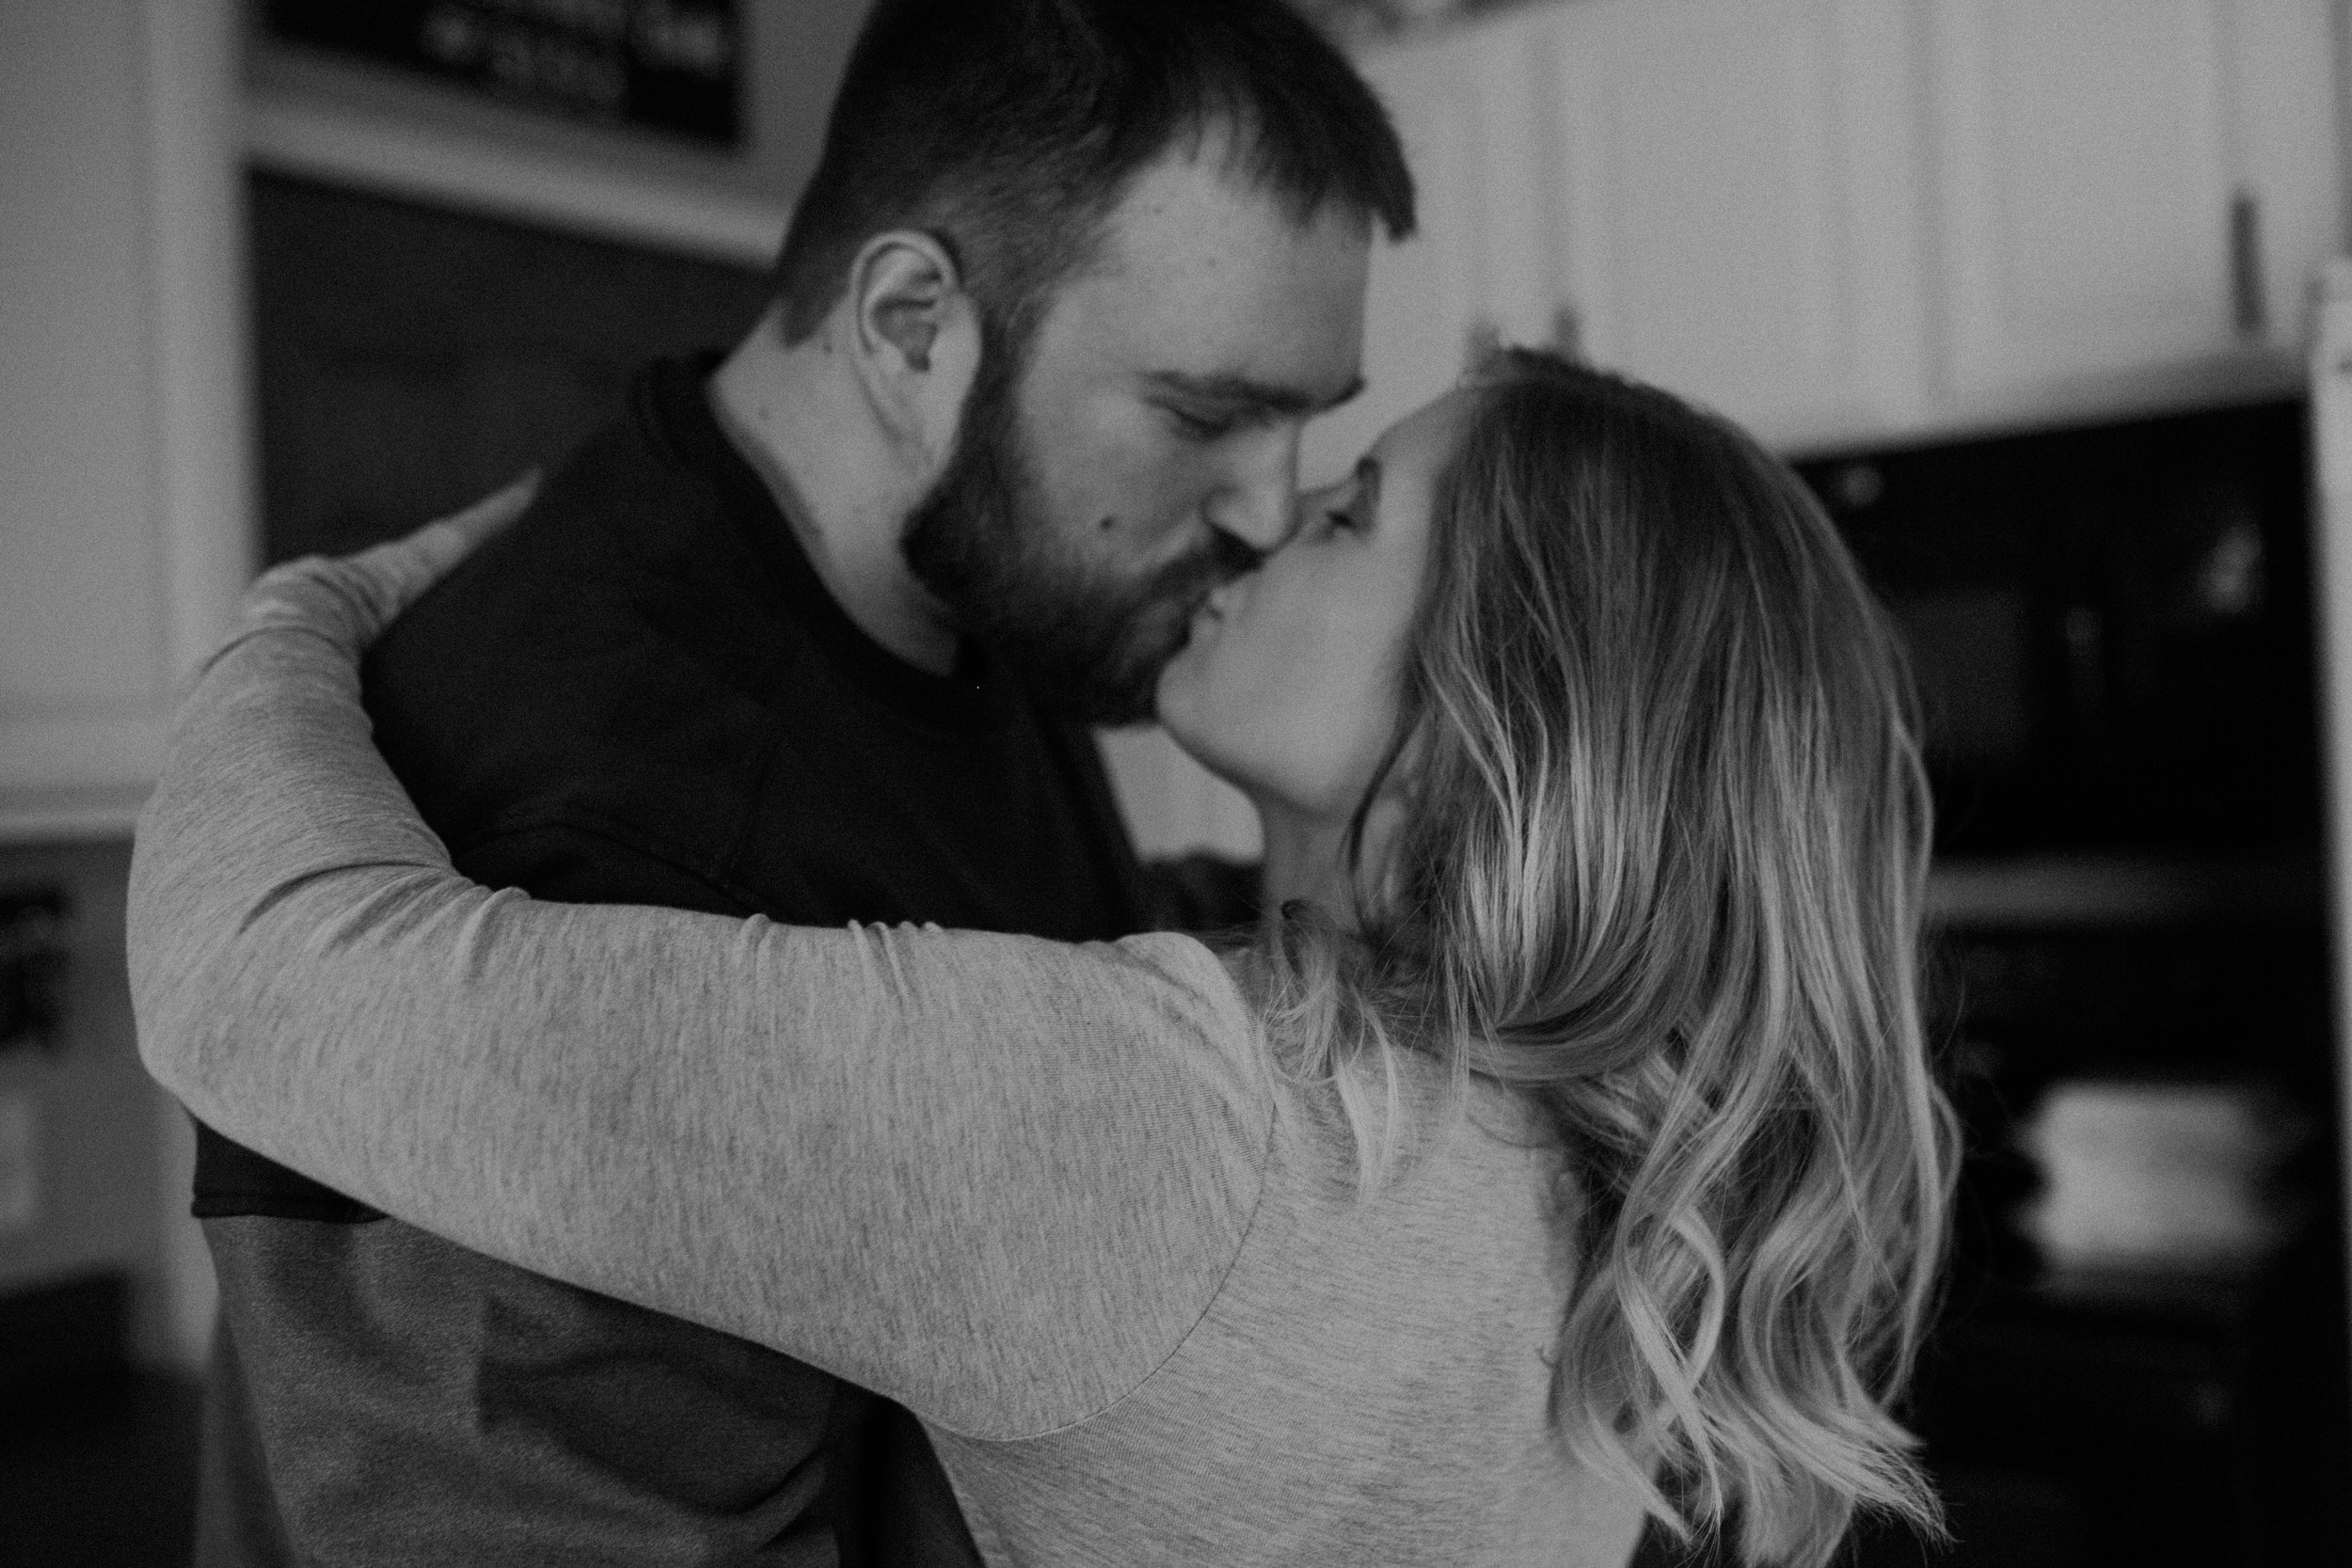 black and white photo of an engaged couple in their home kissing in the kitchen